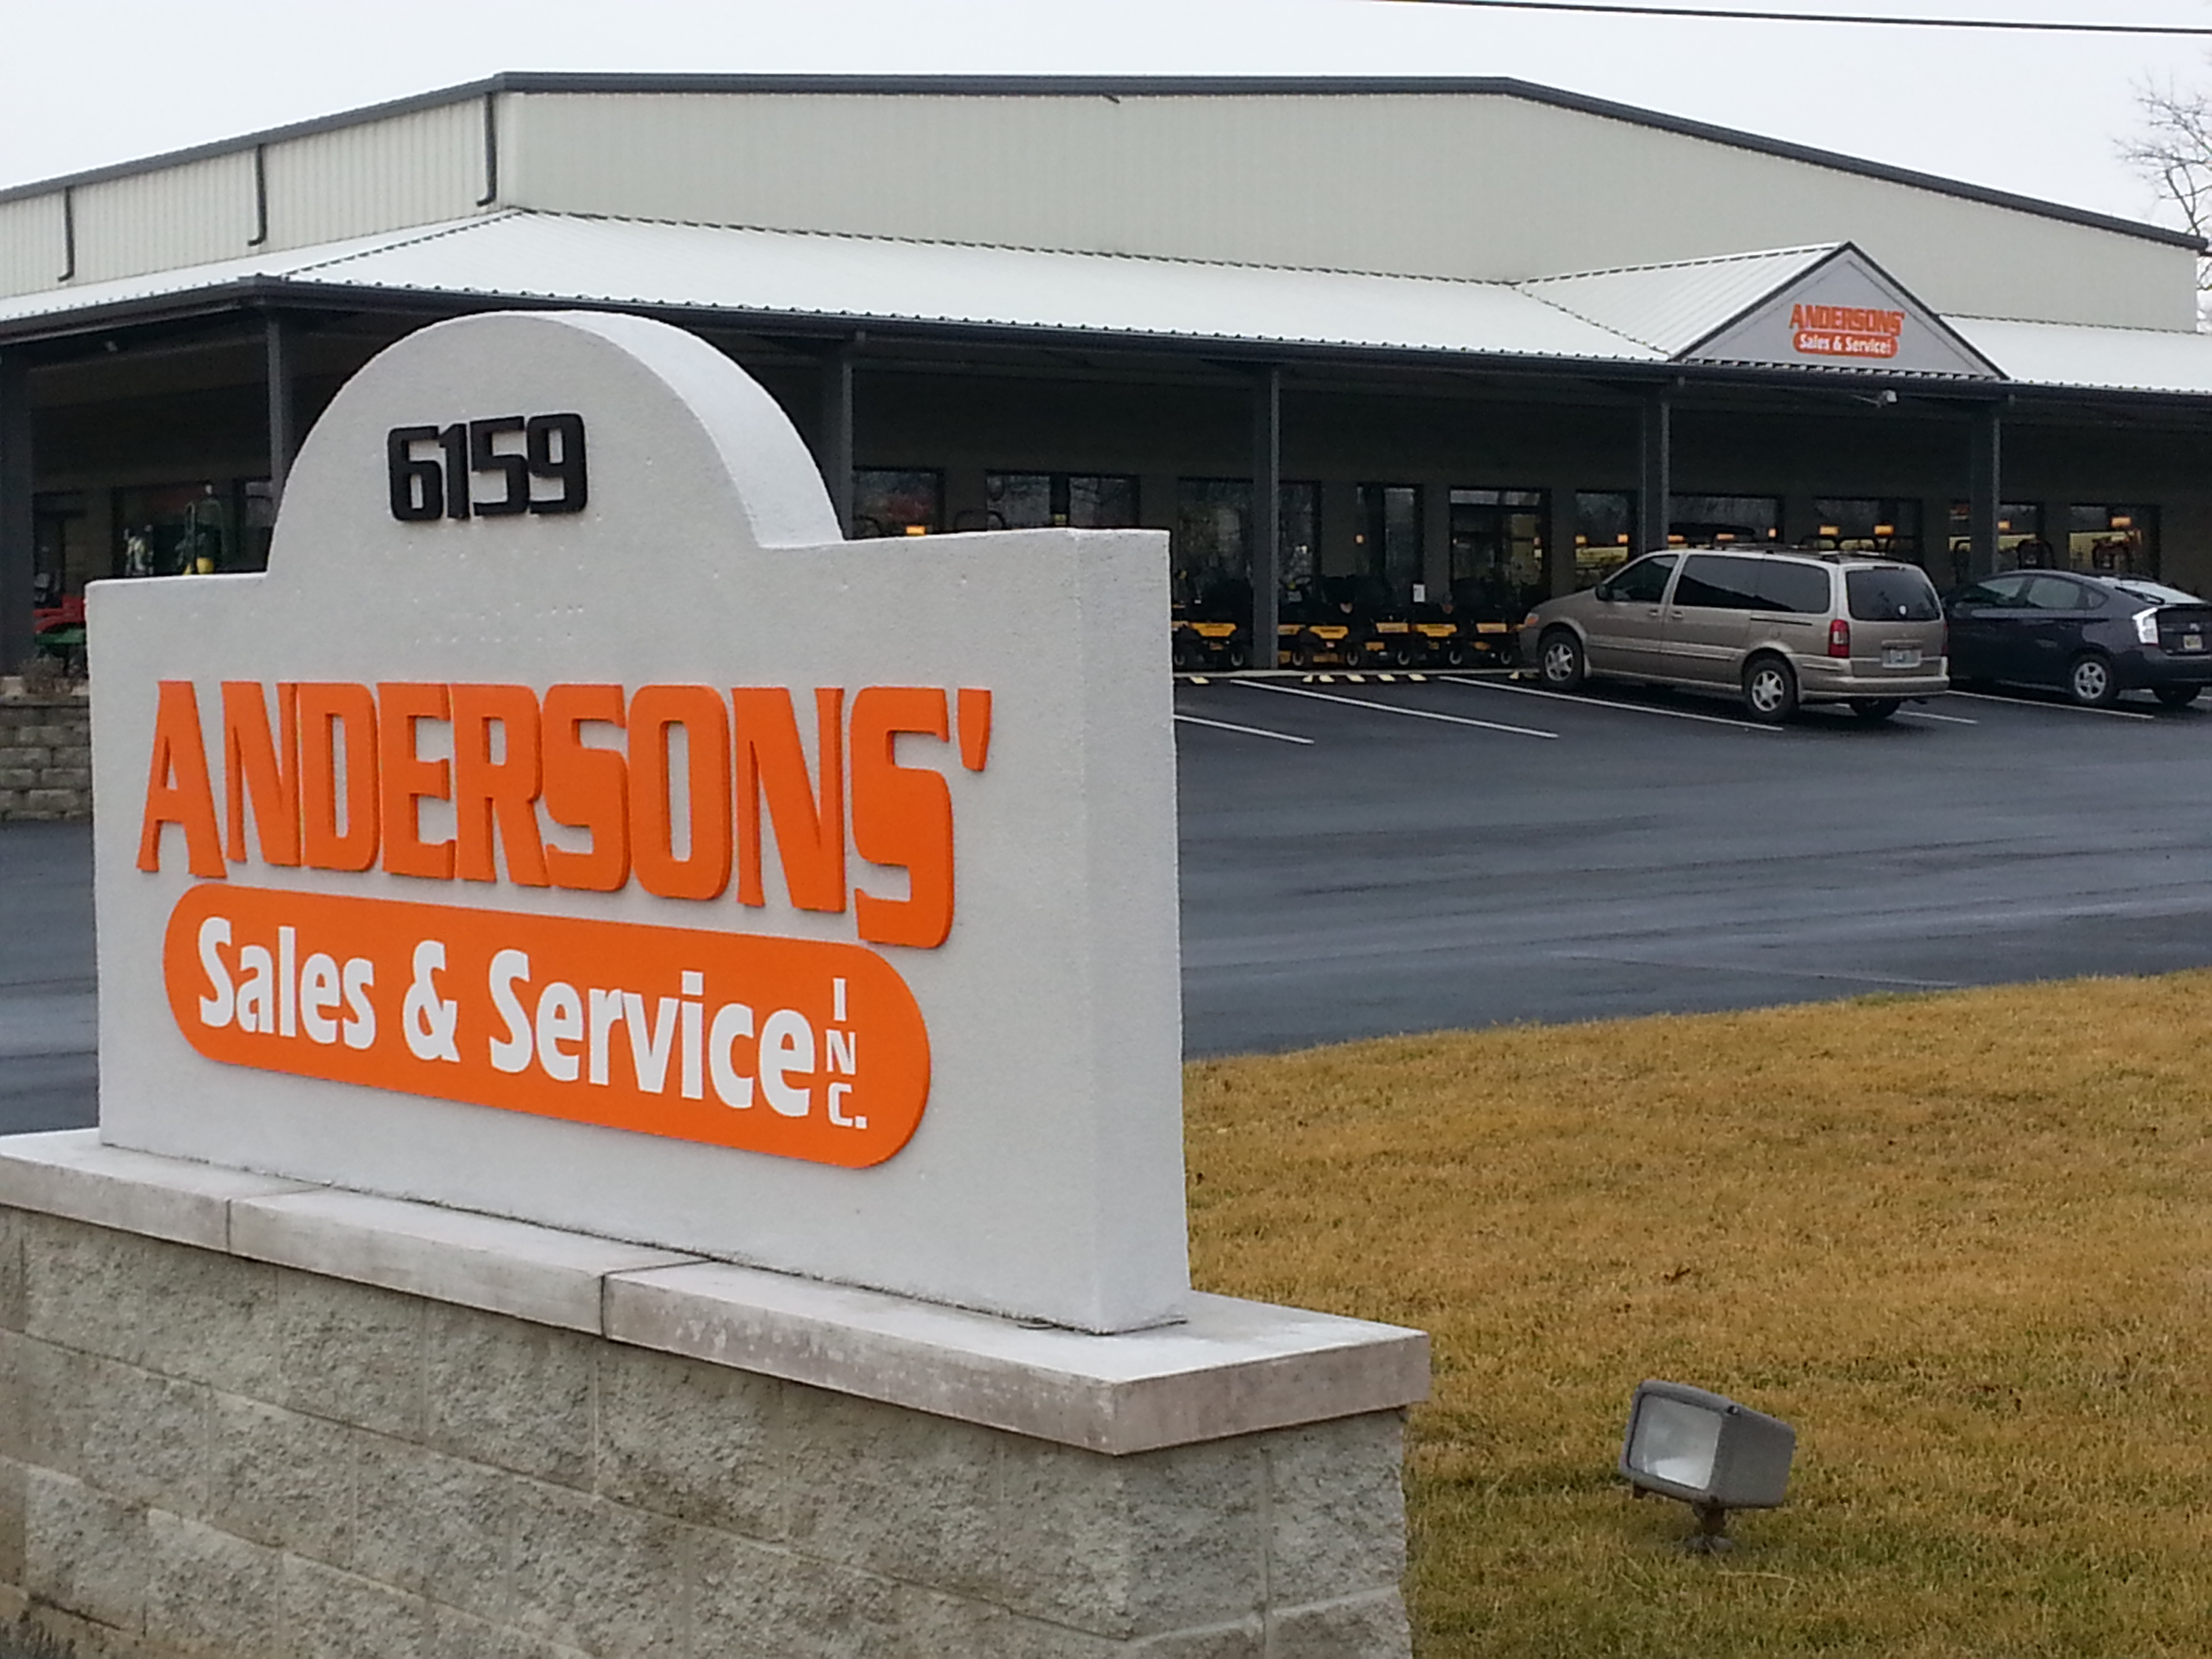 Kubota tractors for sale in kentucky - Andersons Sales Service Inc 6159 West Hwy 146 Crestwood Ky Lawn Garden Equipment Mapquest